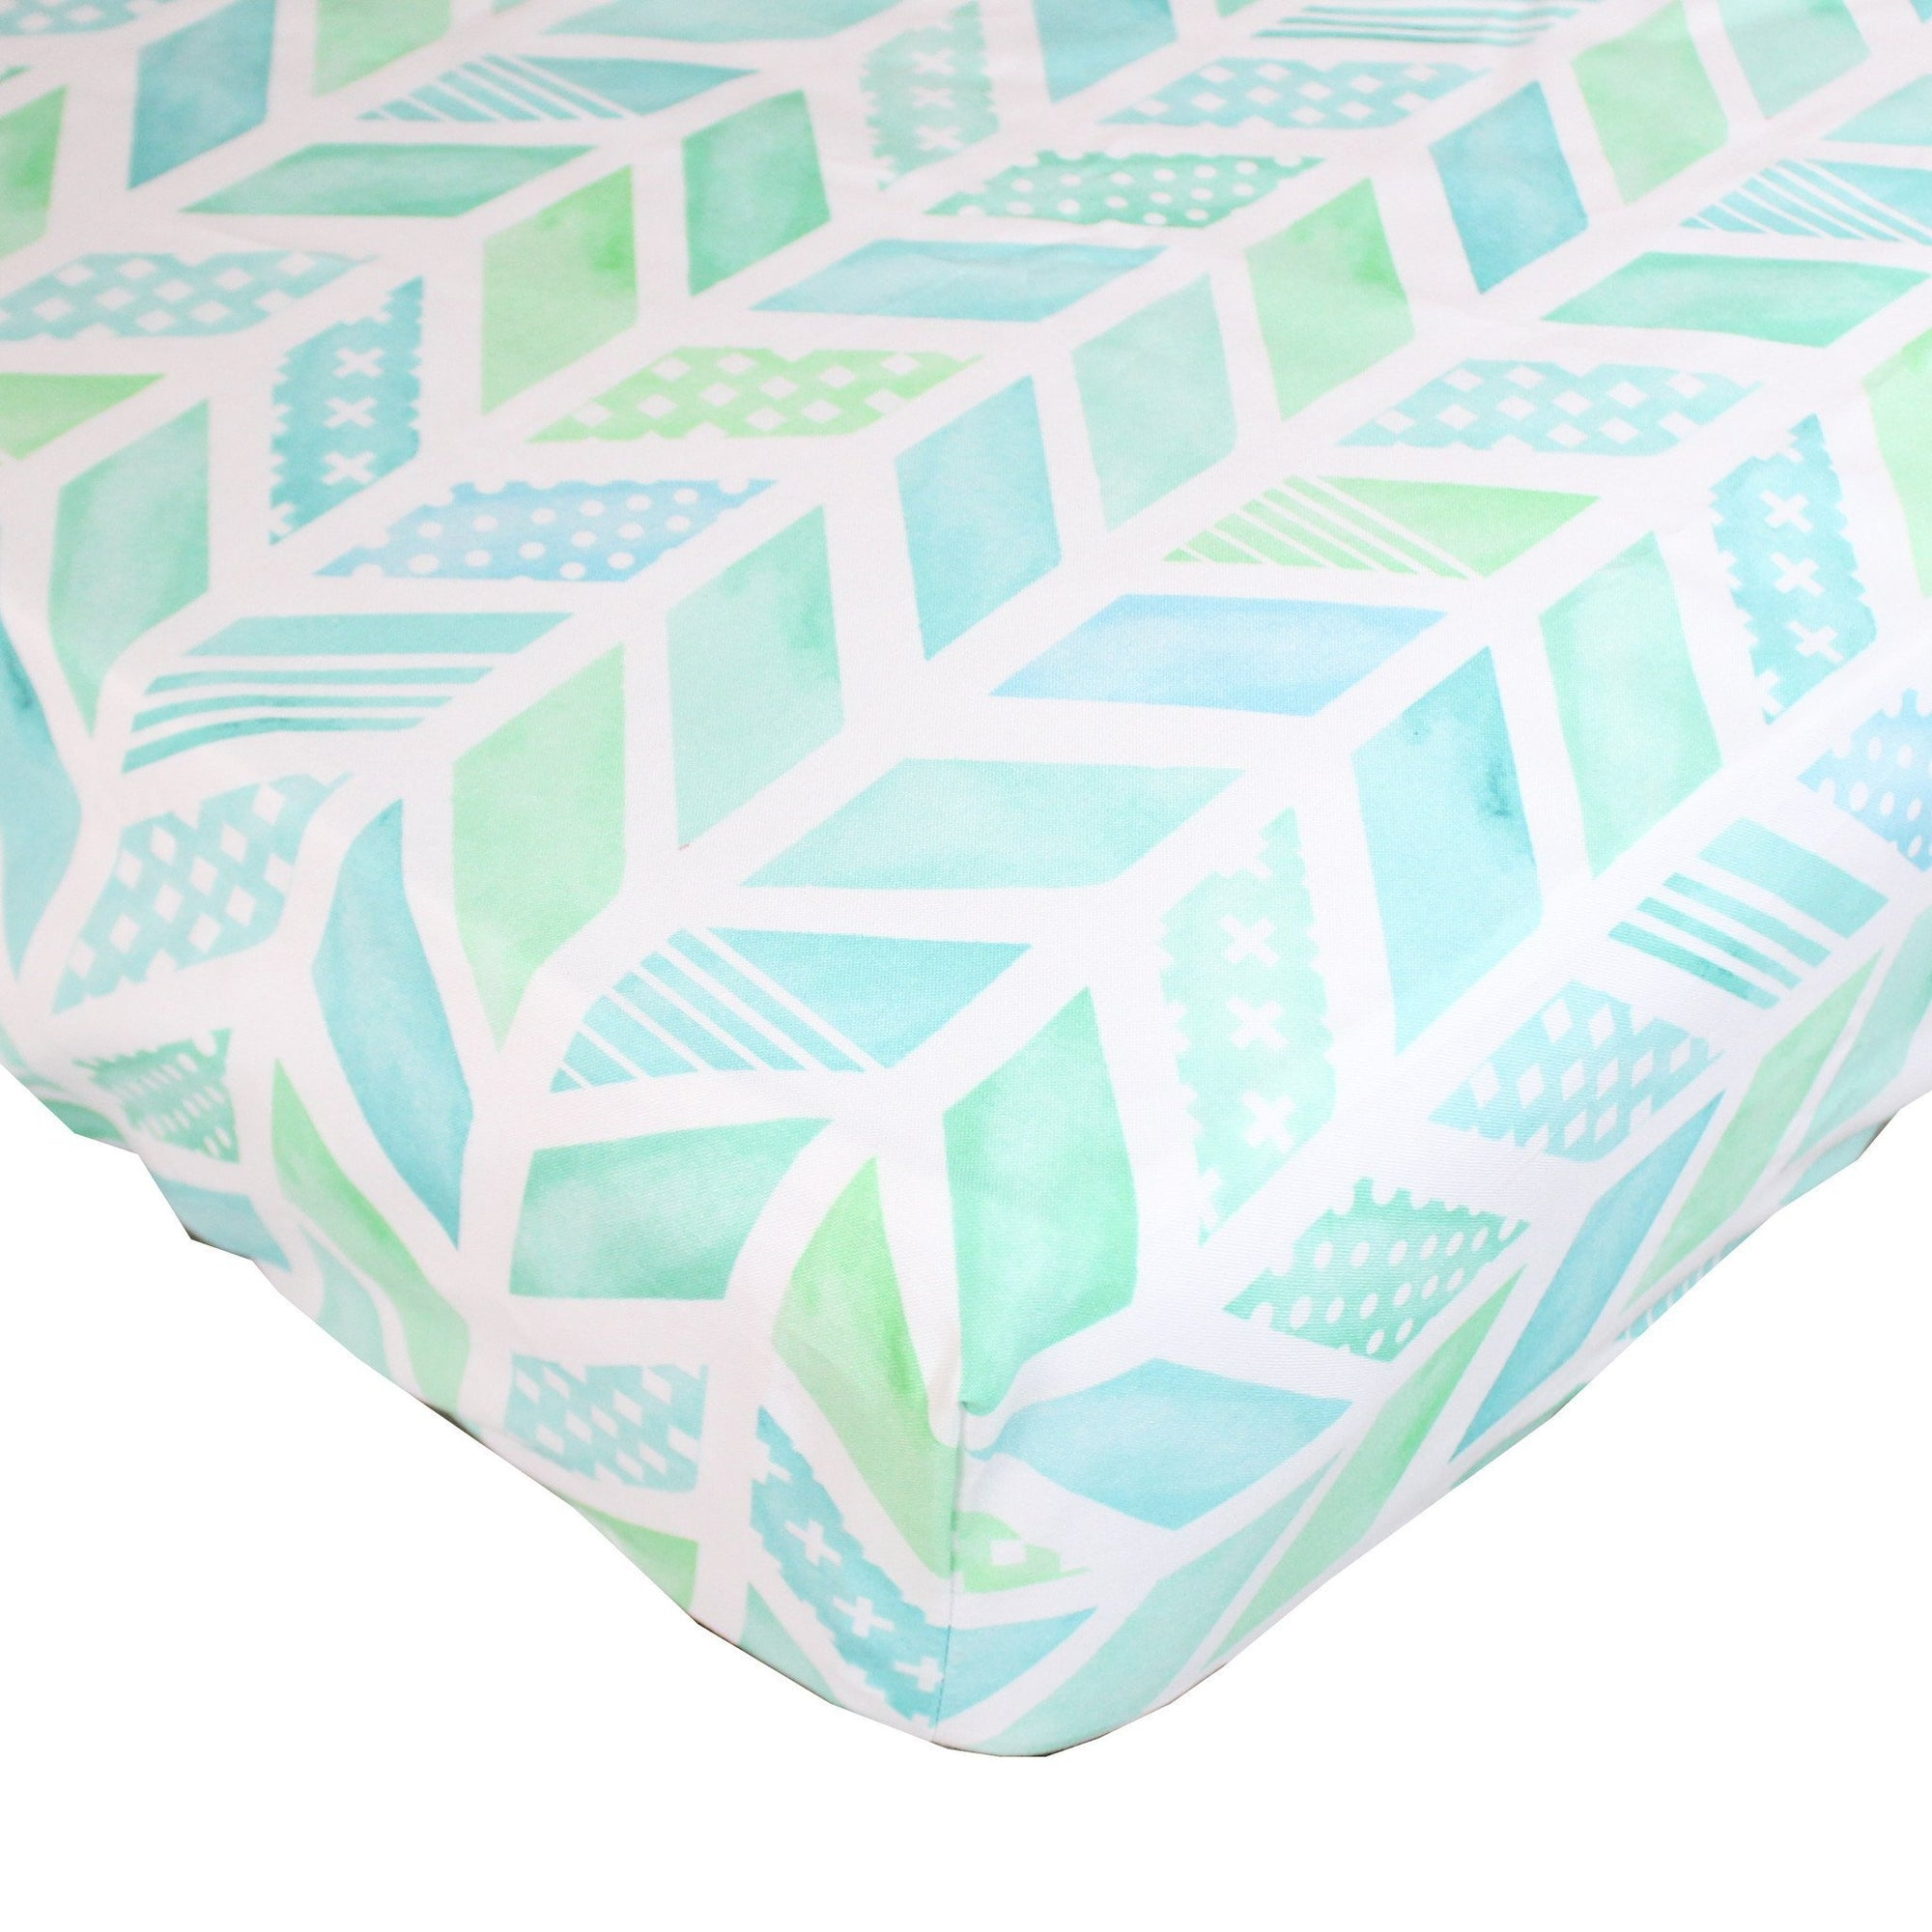 Fitted Crib Sheet | Aqua and Coral Watercolor Herringbone Baby Bedding-Crib Sheets-Jack and Jill Boutique